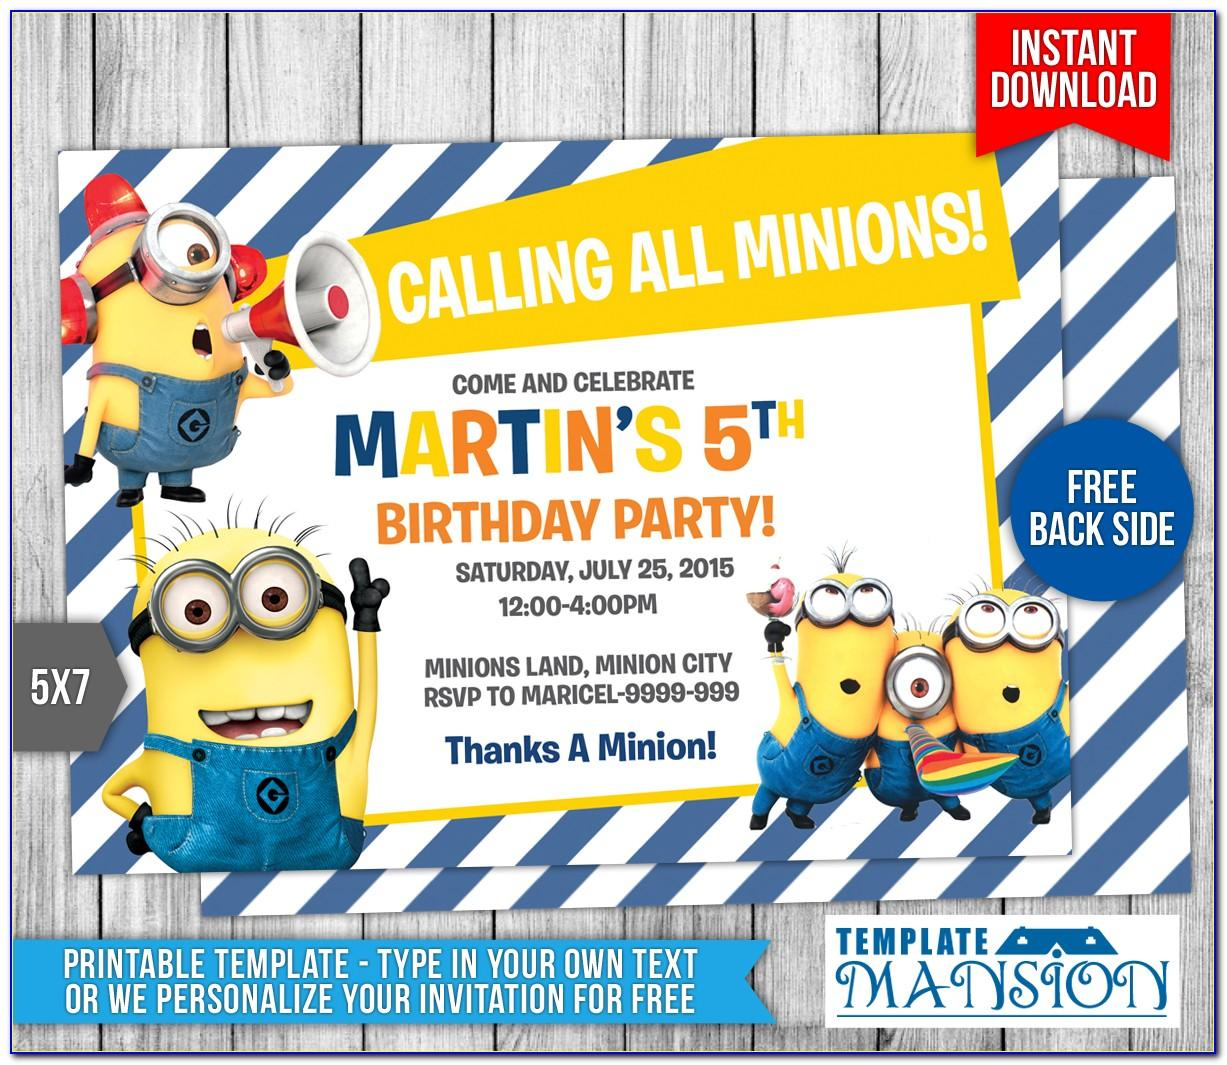 Minion Birthday Party Invitations Templates Free